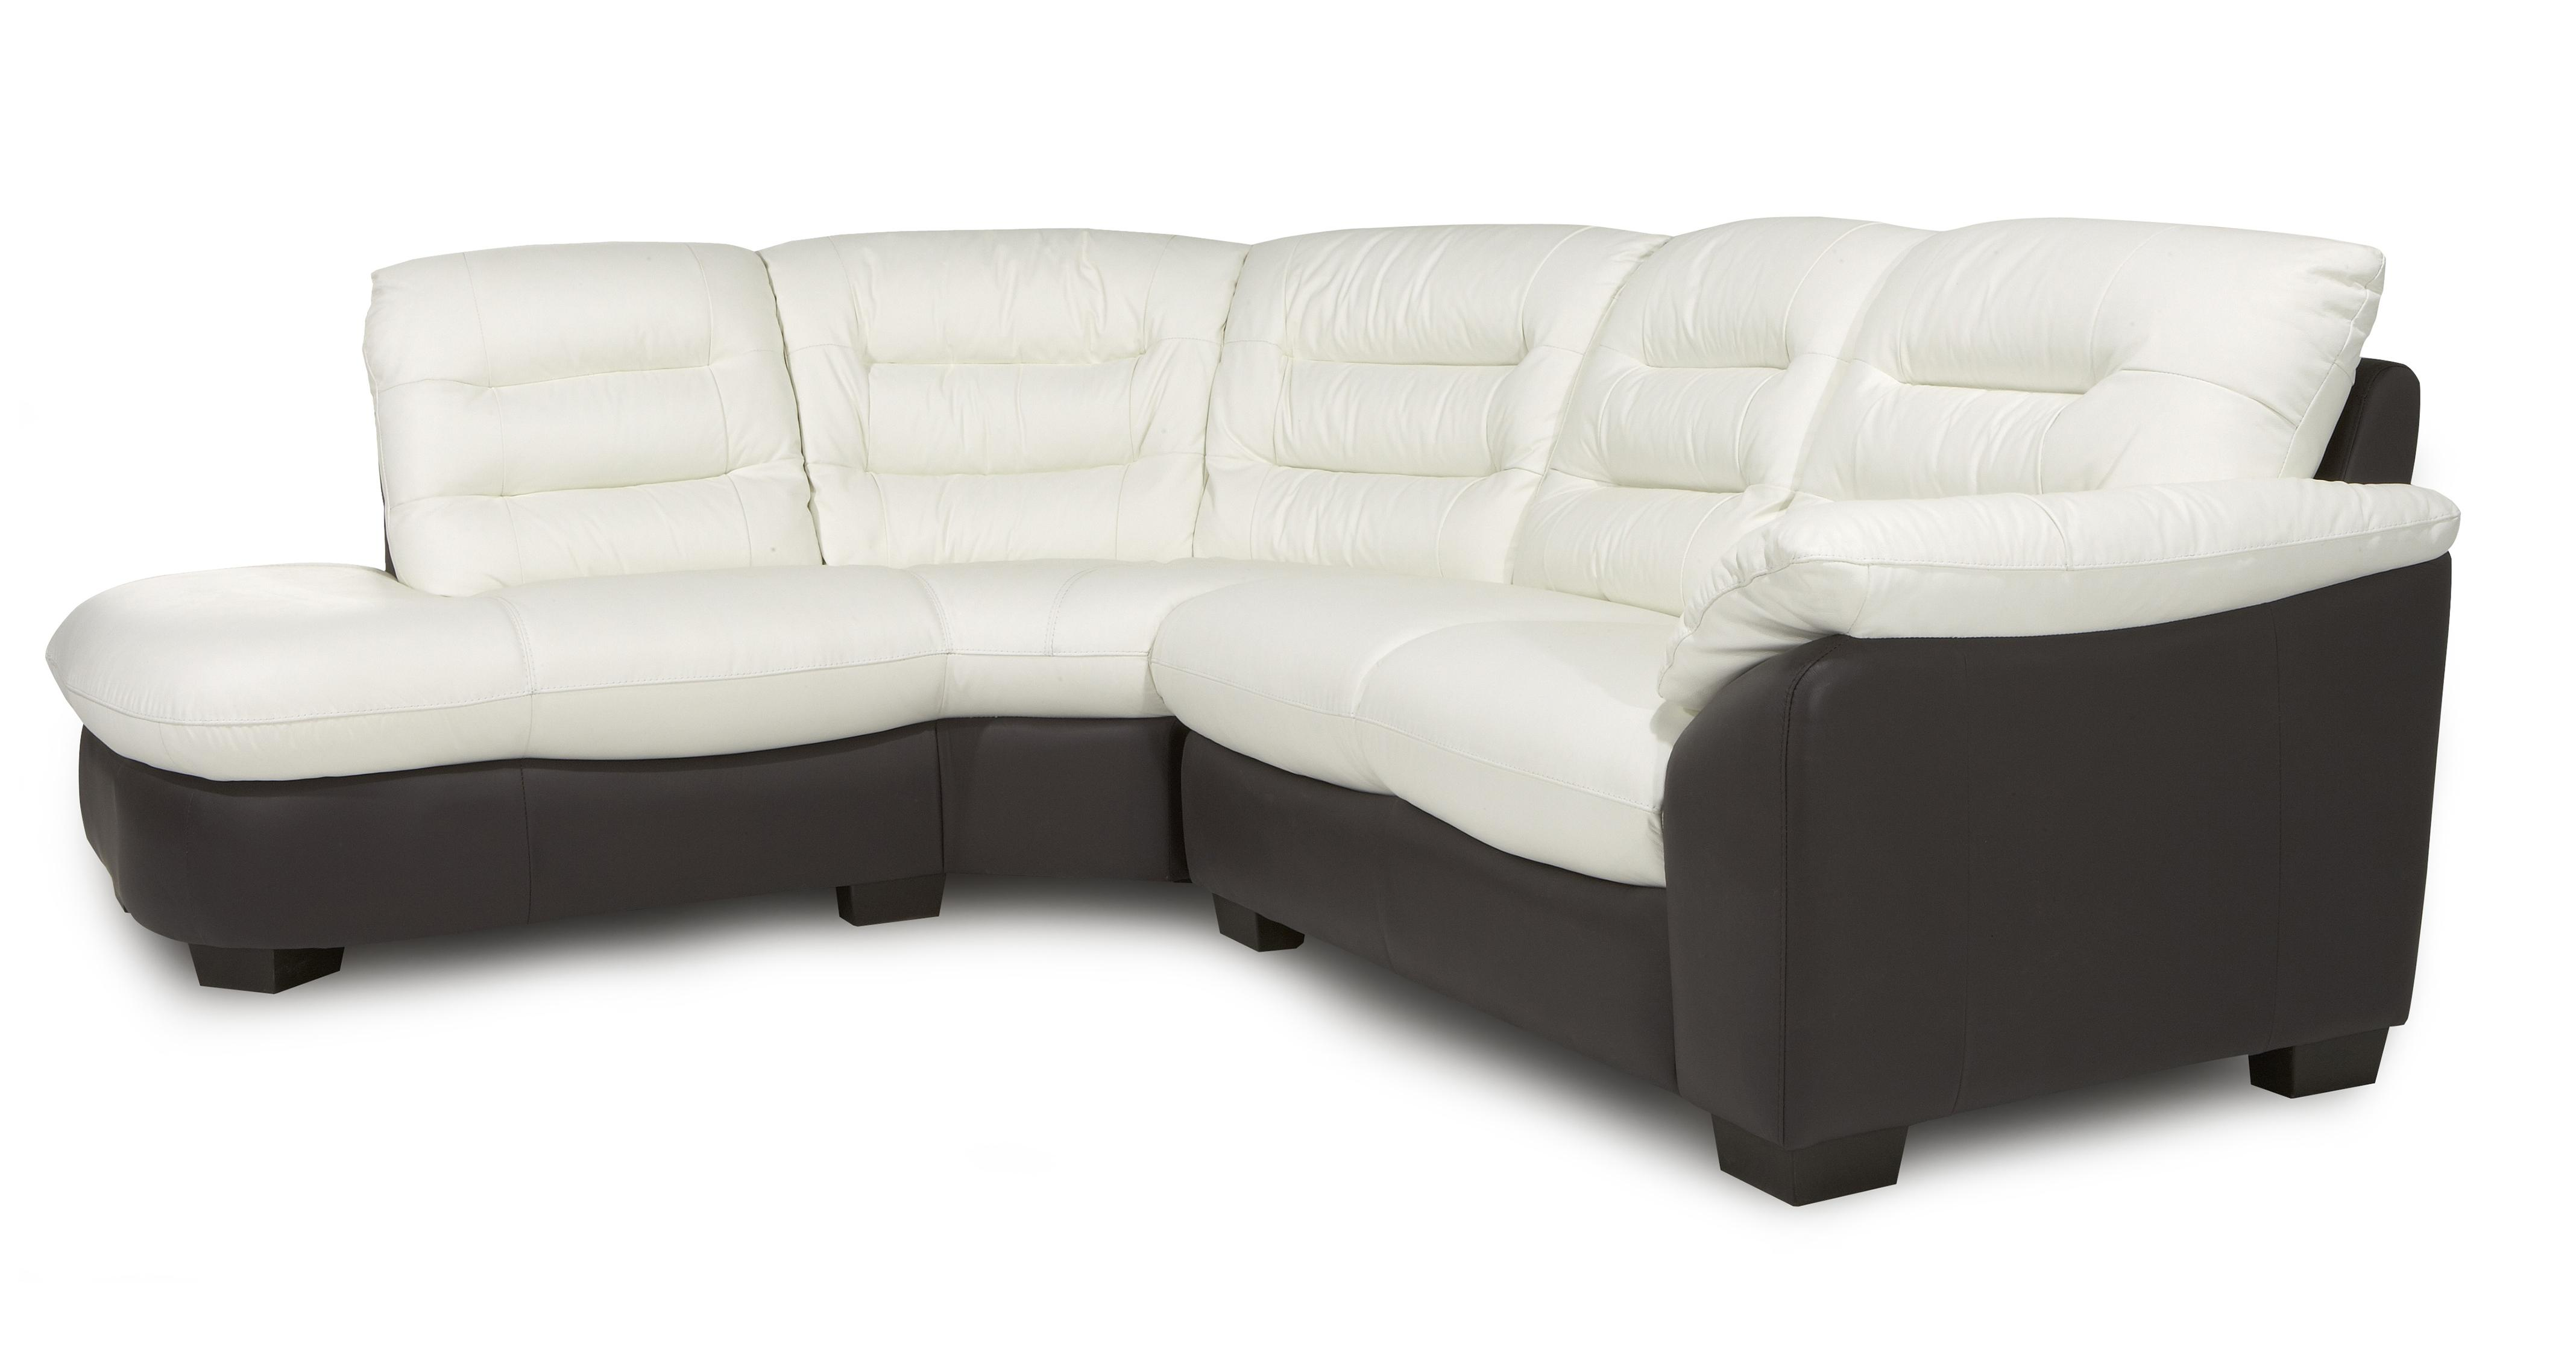 black and white sofa brands alytus leather corner dfs energywarden